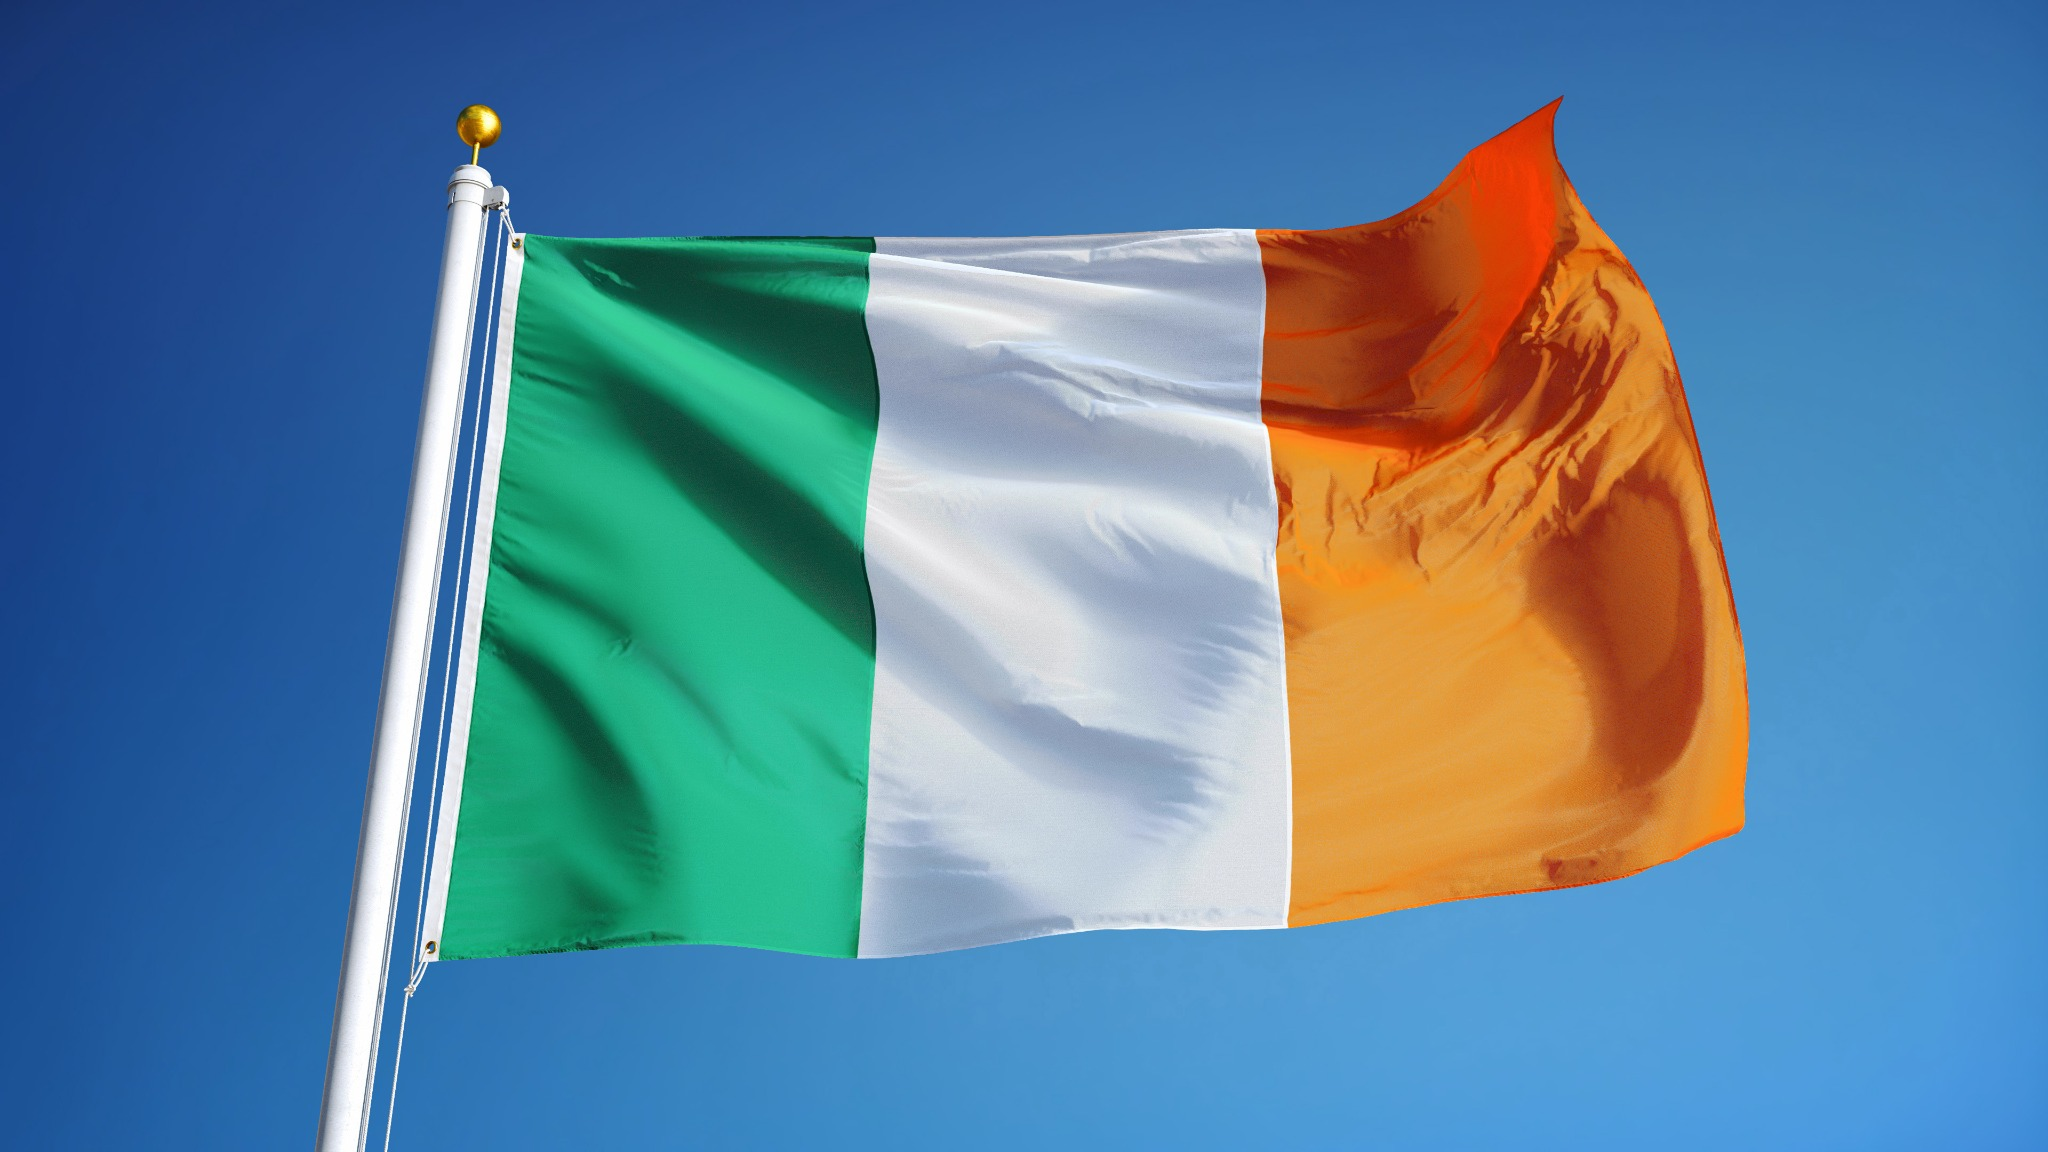 What Is The History Behind The Irish Flag?